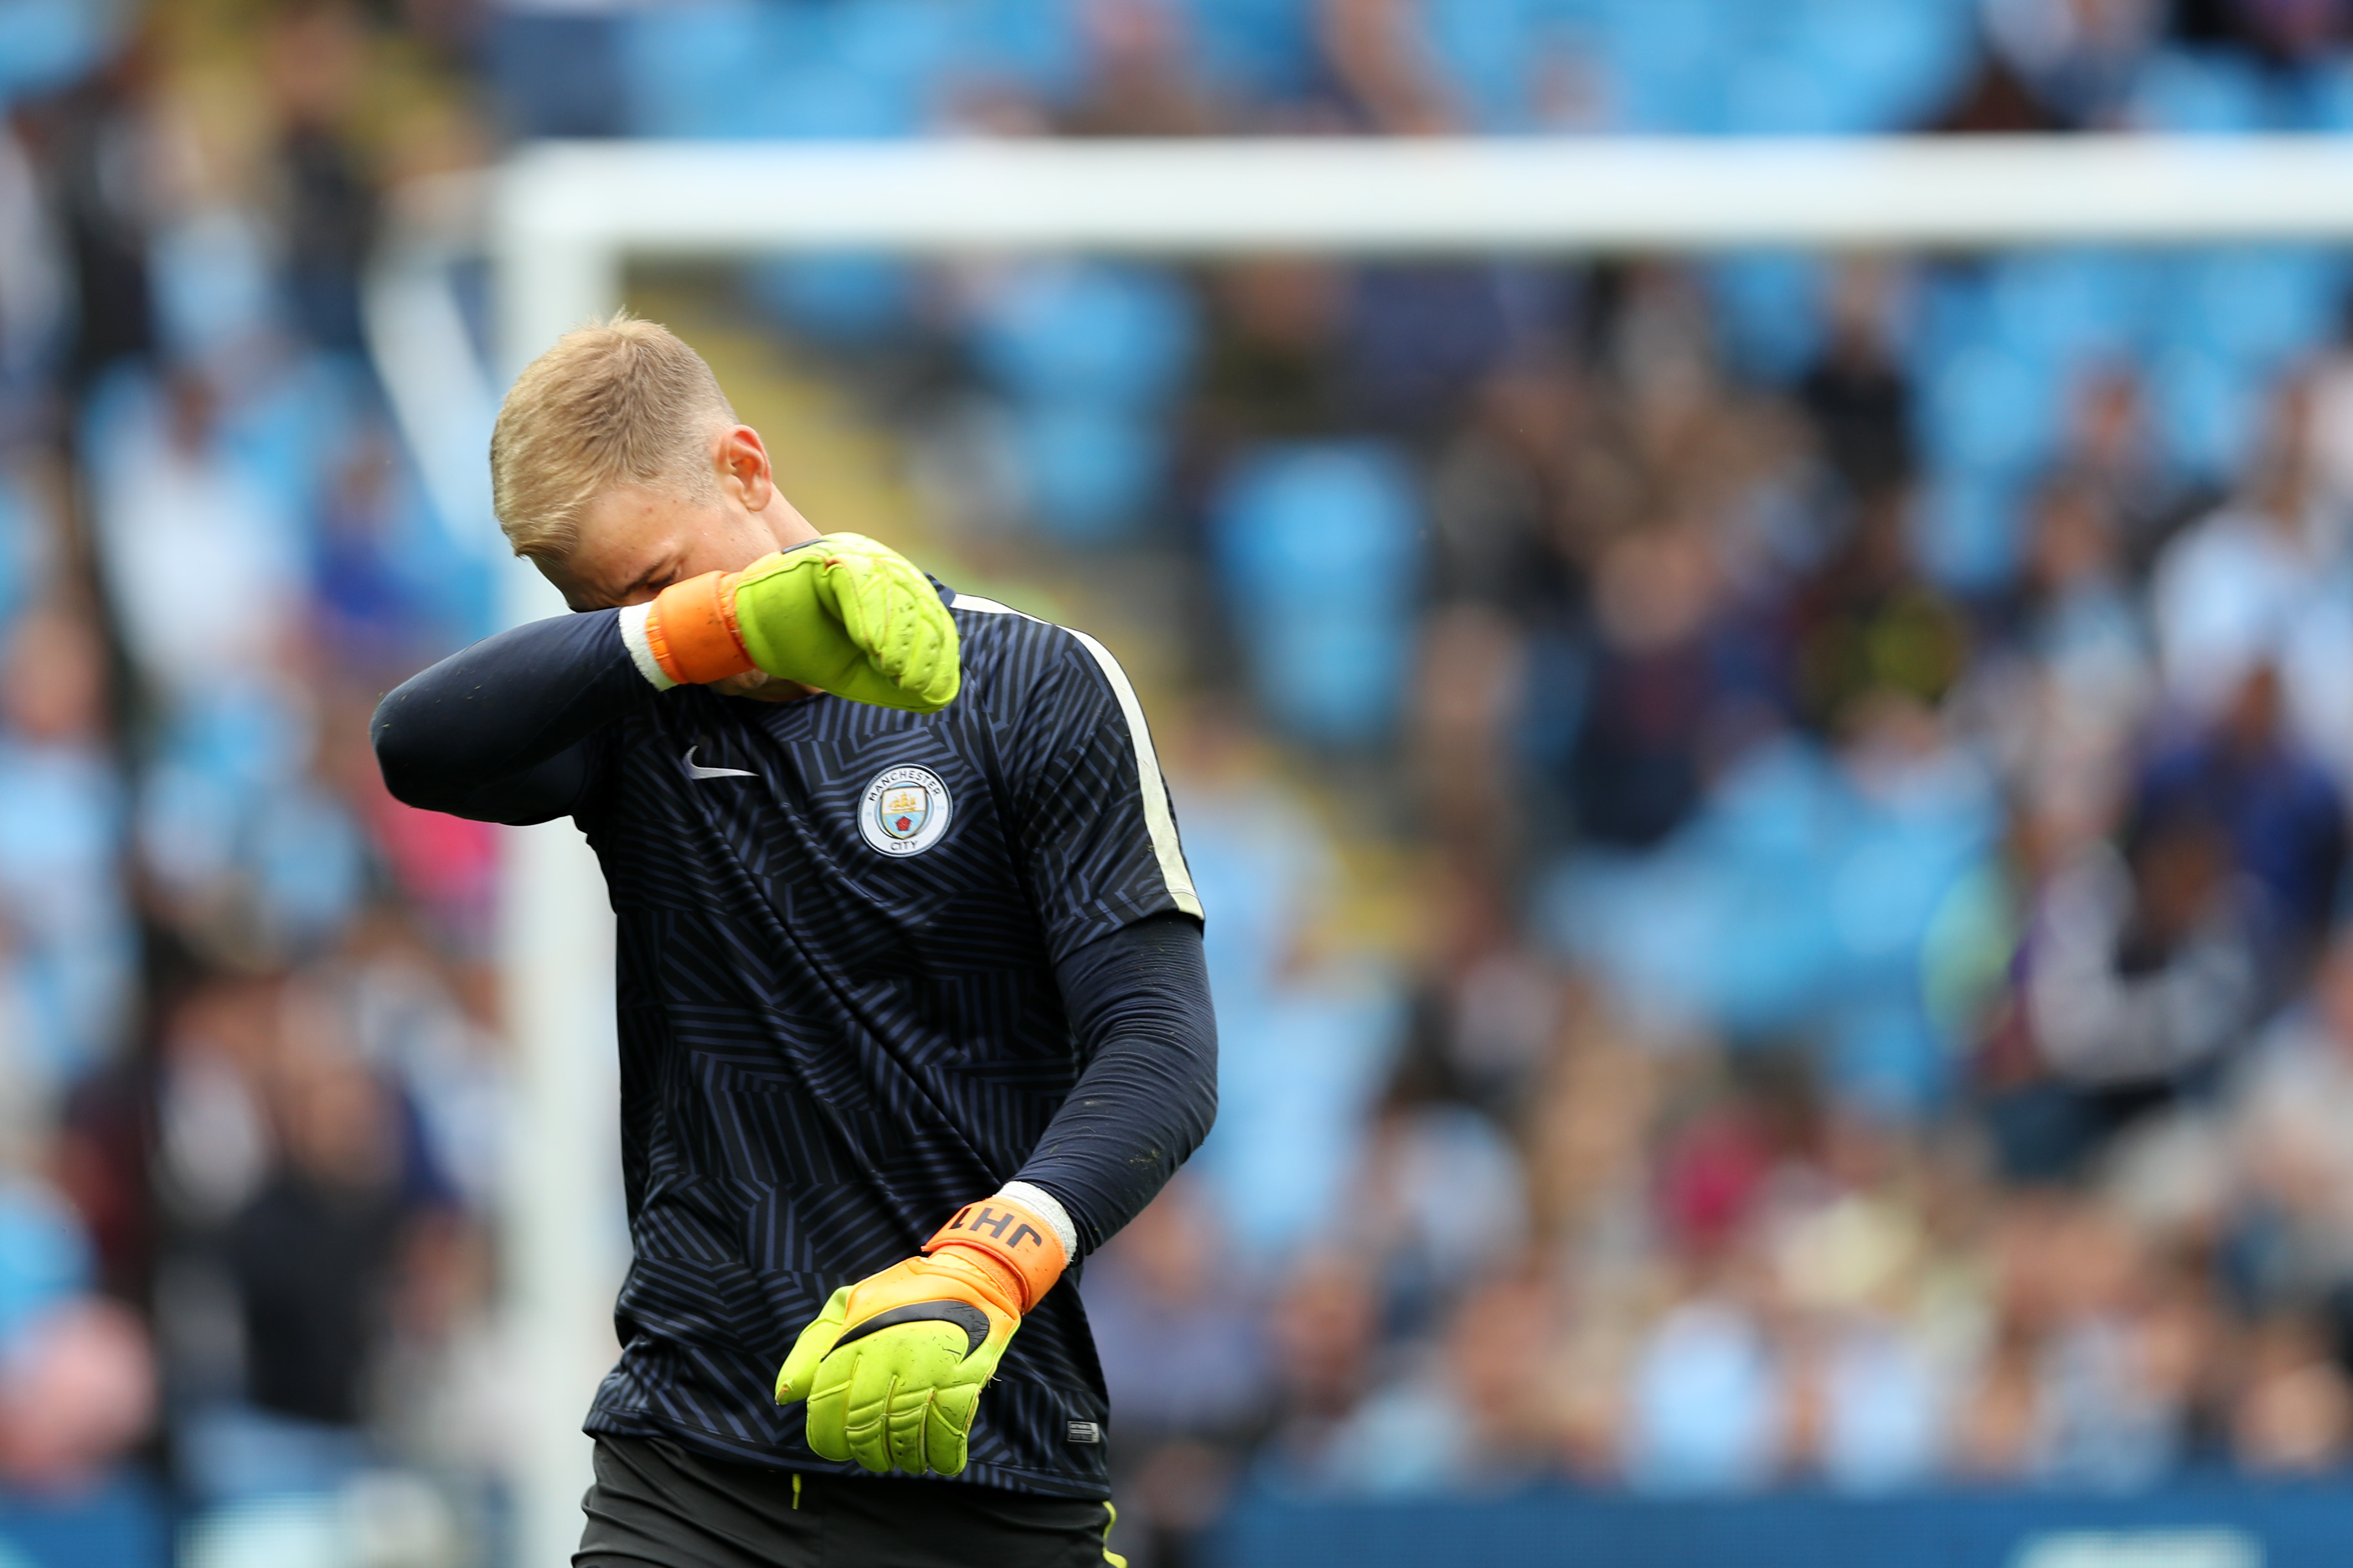 Joey Barton labels Manchester City's treatment of Joe Hart 'disgusting'